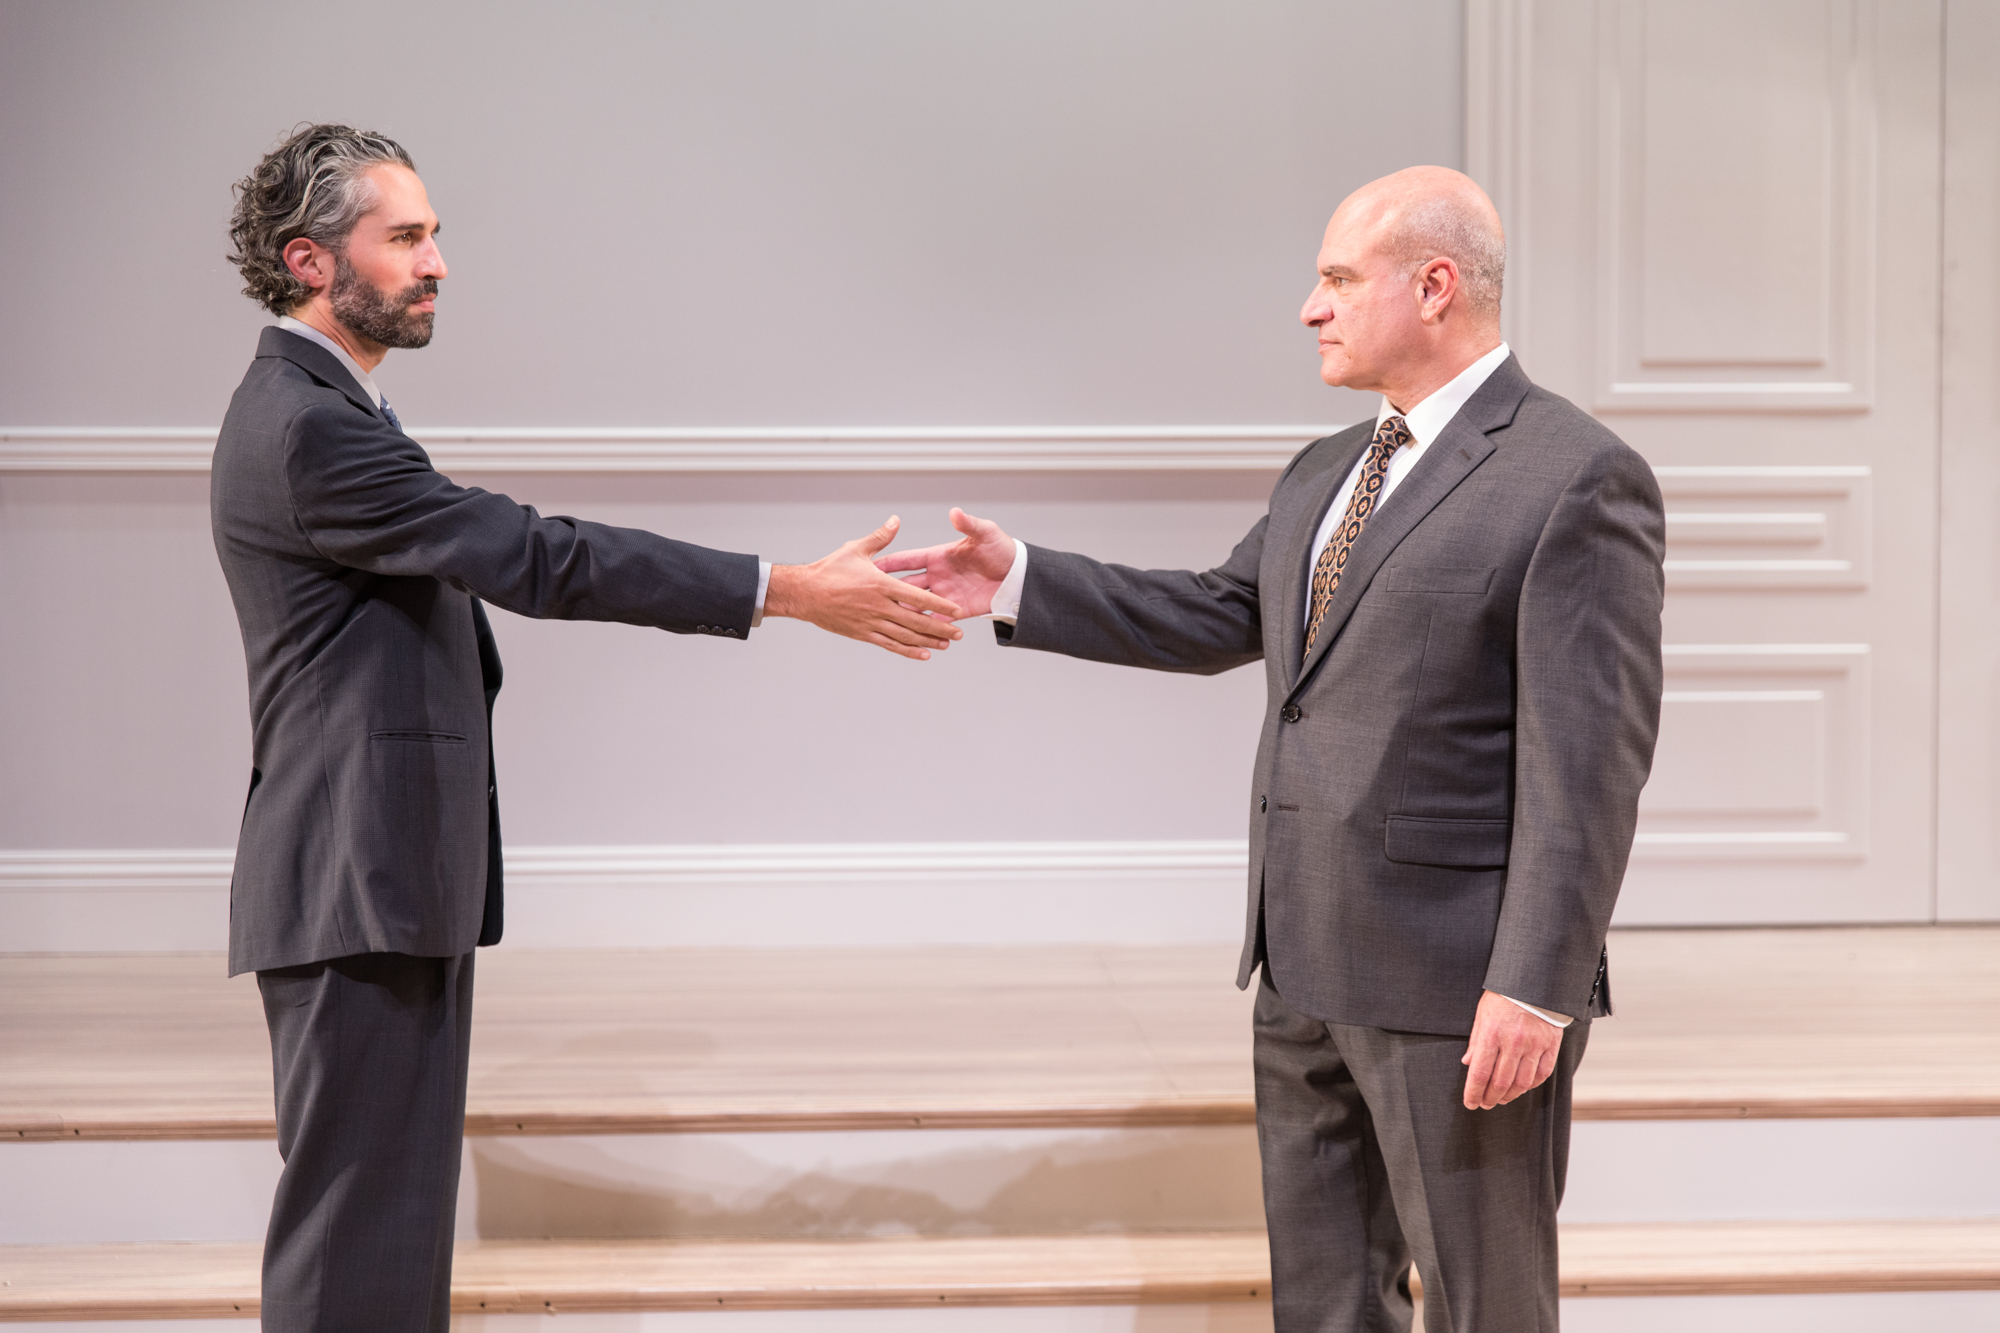 """Israeli diplomat Uri Savir (Ben Cherry, left) makes an agreement with his Palestinian counterpart, Ahmed Qurel (Demosthenes Chrysan), in a scene from Pioneer Theatre Company's production of J.T. Rogers' Tony-winning play """"Oslo."""" The play runs at Pioneer Memorial Theatre from Sept. 14 to 29. (Photo courtesy Pioneer Theatre Company)"""